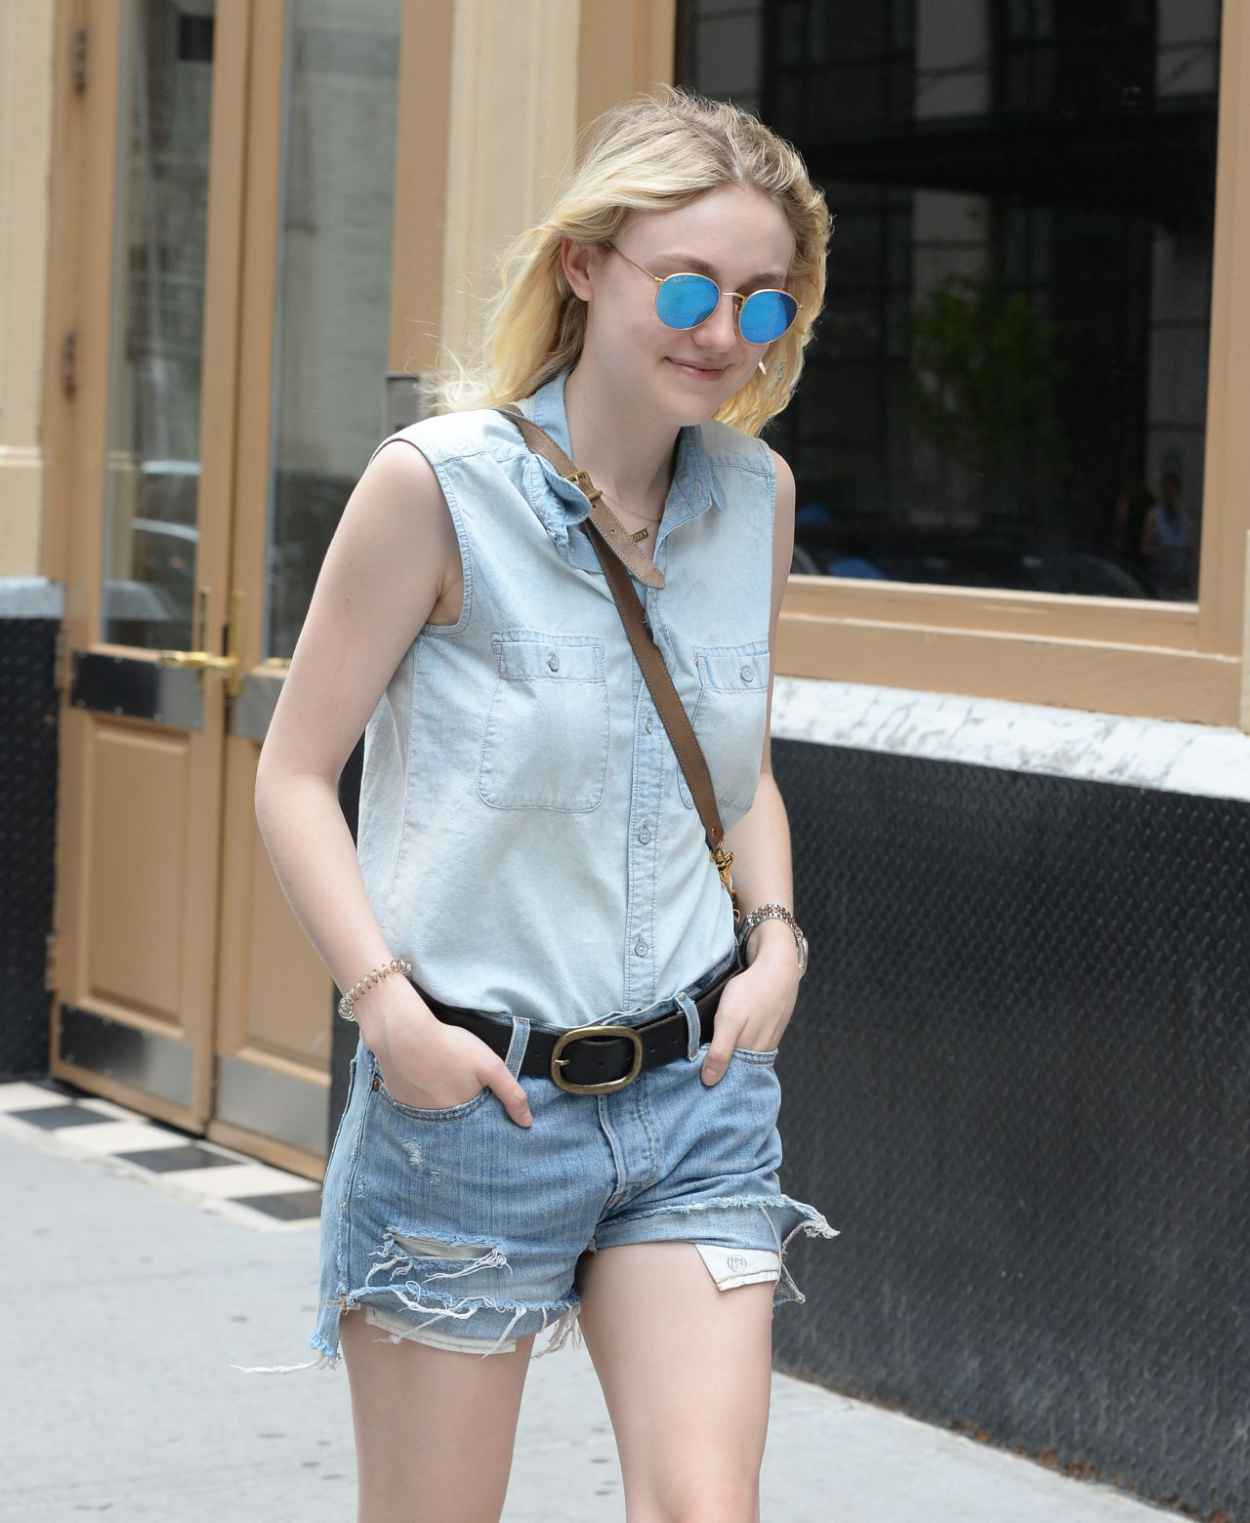 Dakota Fanning Leggy in Jeans Shorts - Soho NYC, June 2015-5